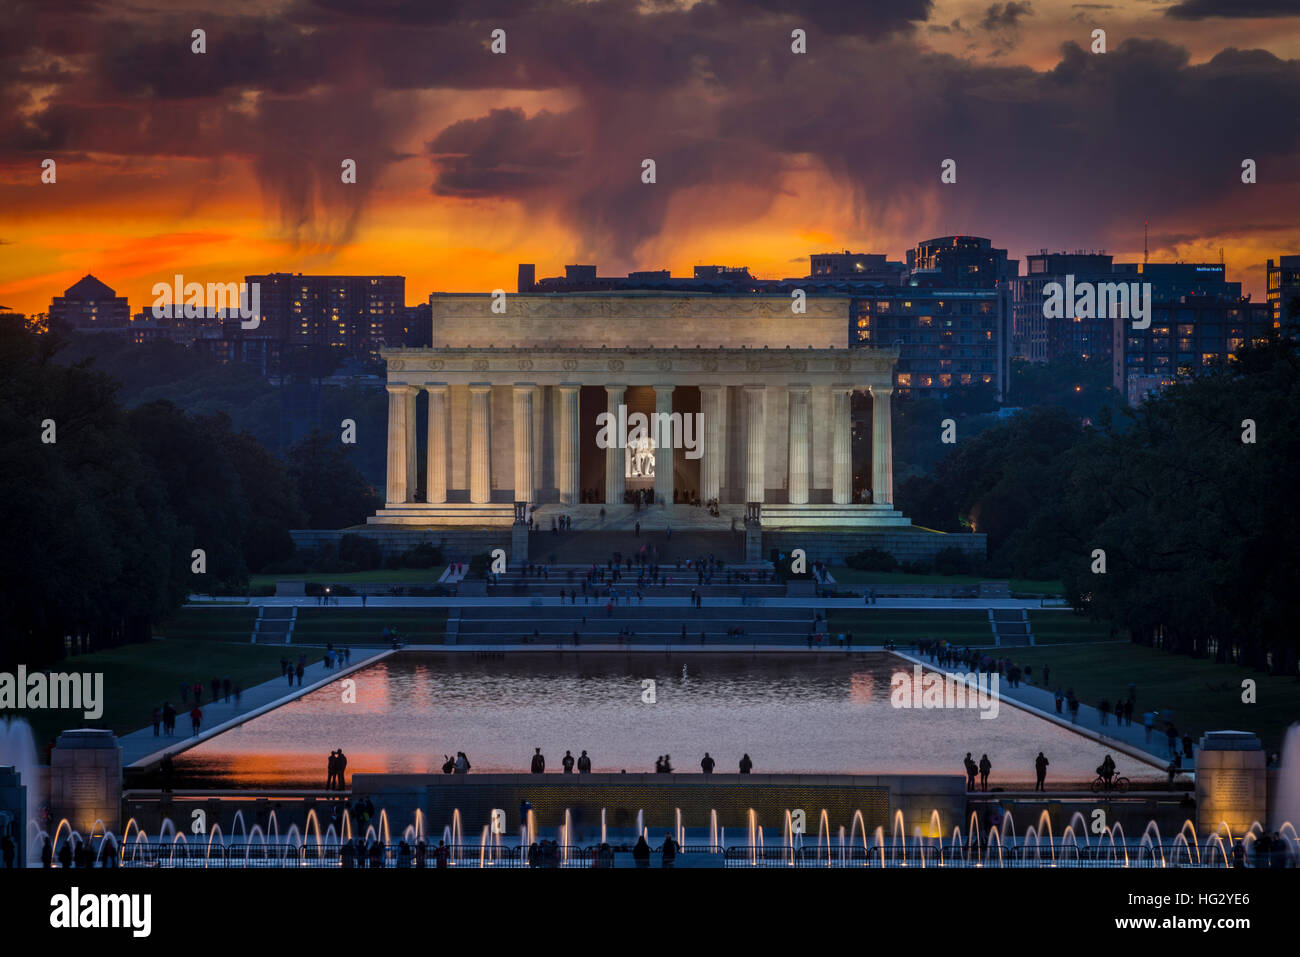 Il Lincoln Memorial, Washington DC, Stati Uniti d'America Immagini Stock